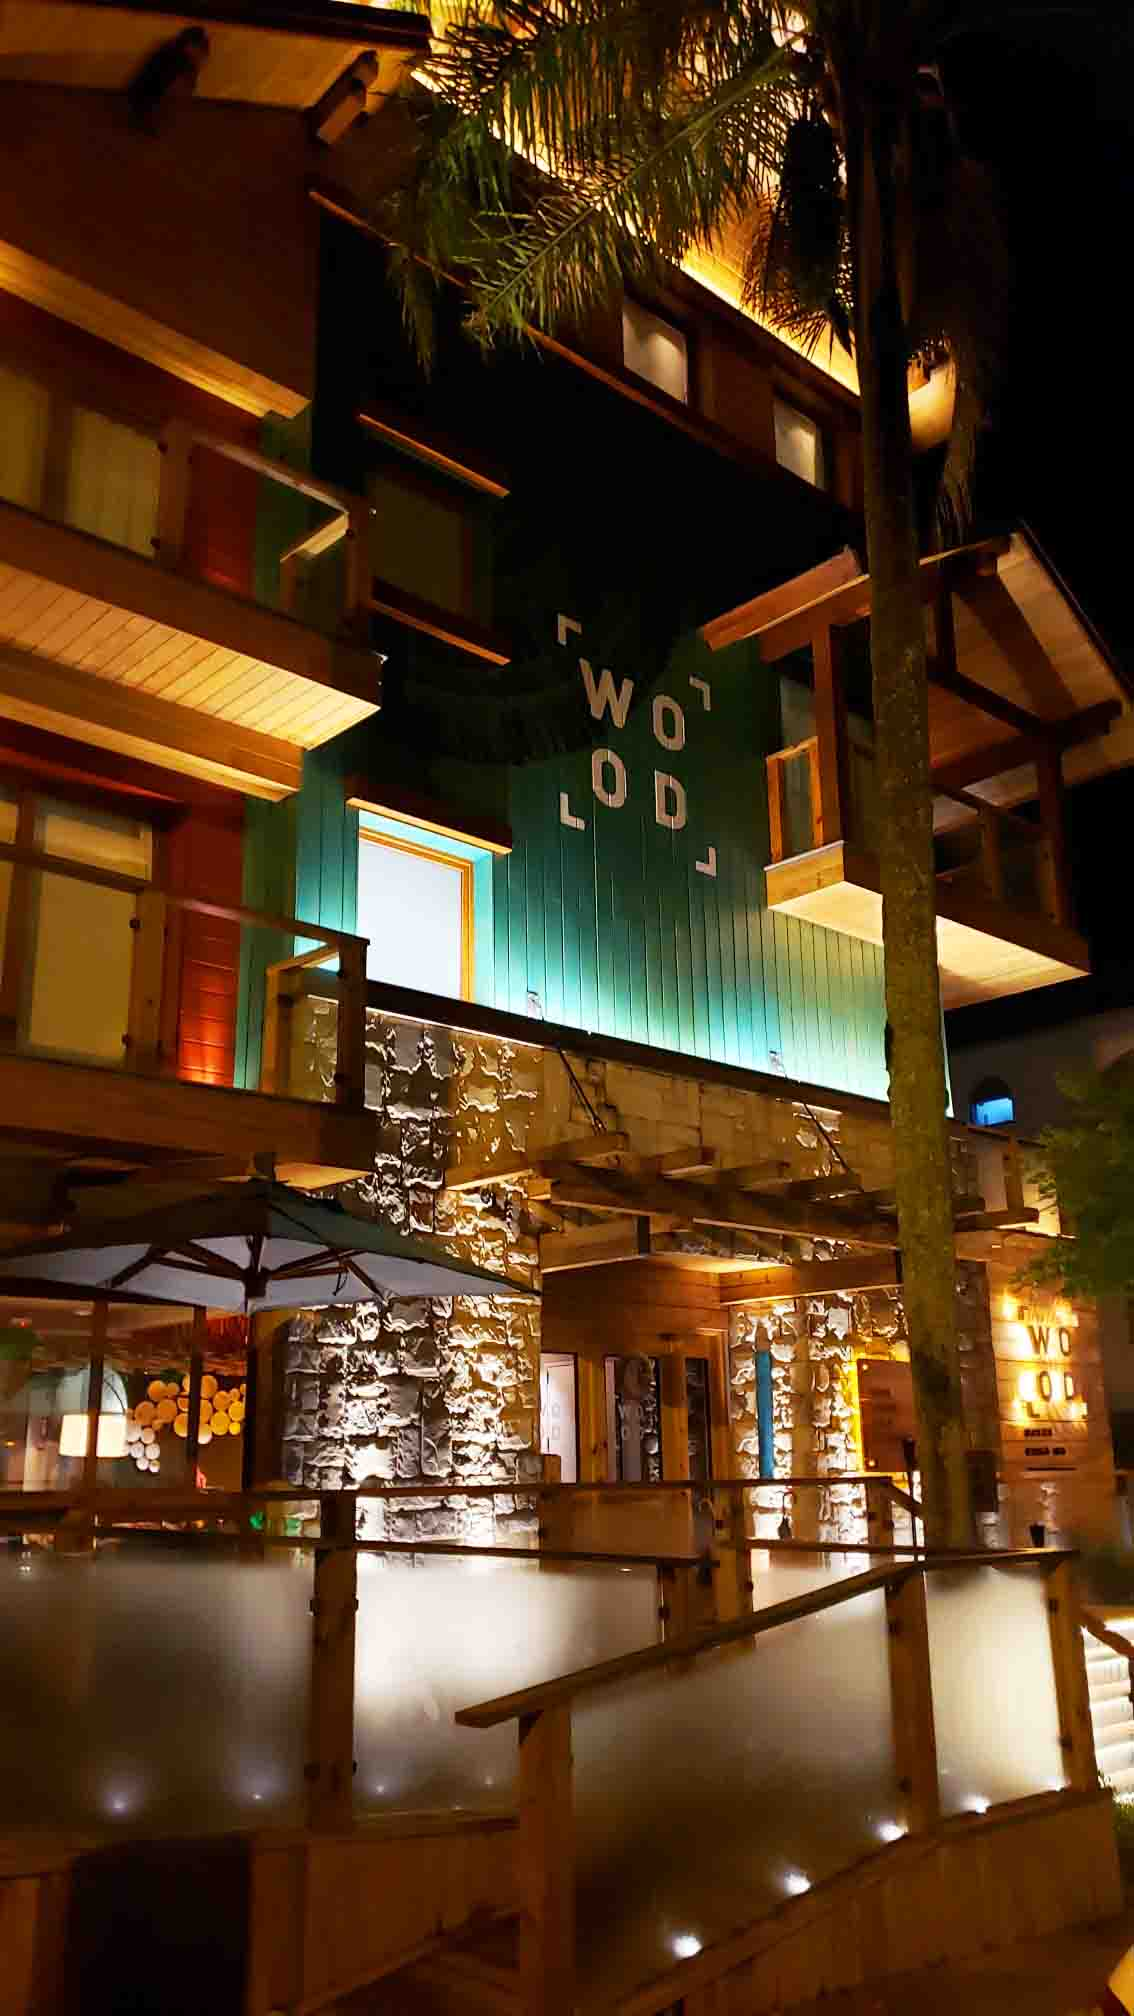 Fachada do Hotel Wood